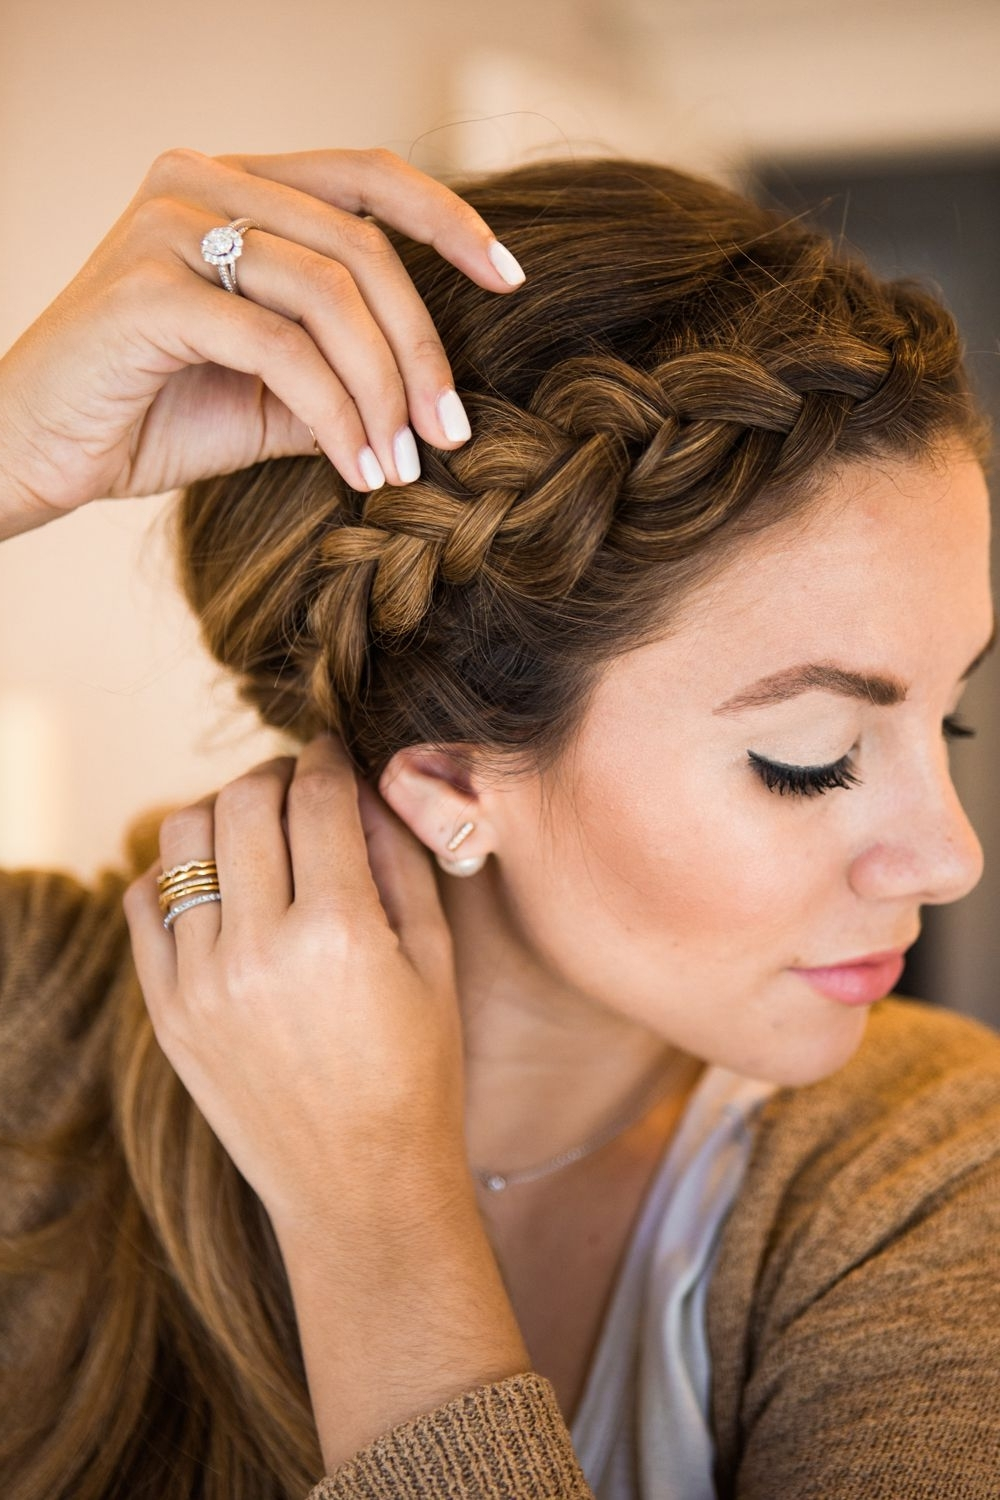 Pinterest Intended For Current Long Pony Hairstyles With A Side Braid (View 13 of 20)